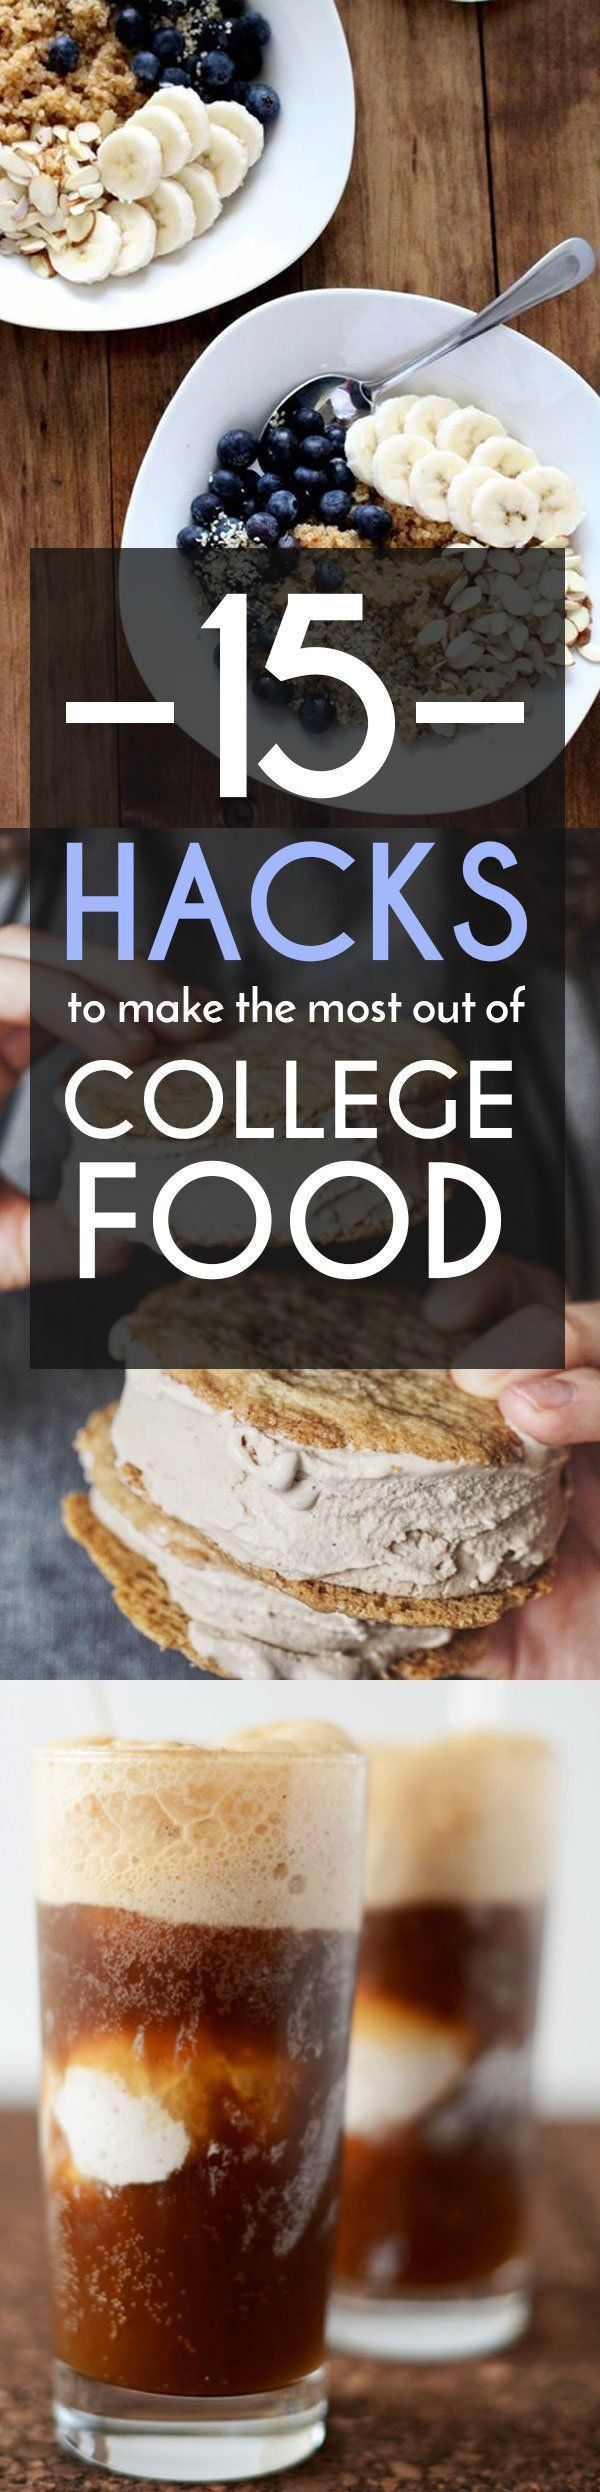 15 Hacks To Make The Most Out Of College Food